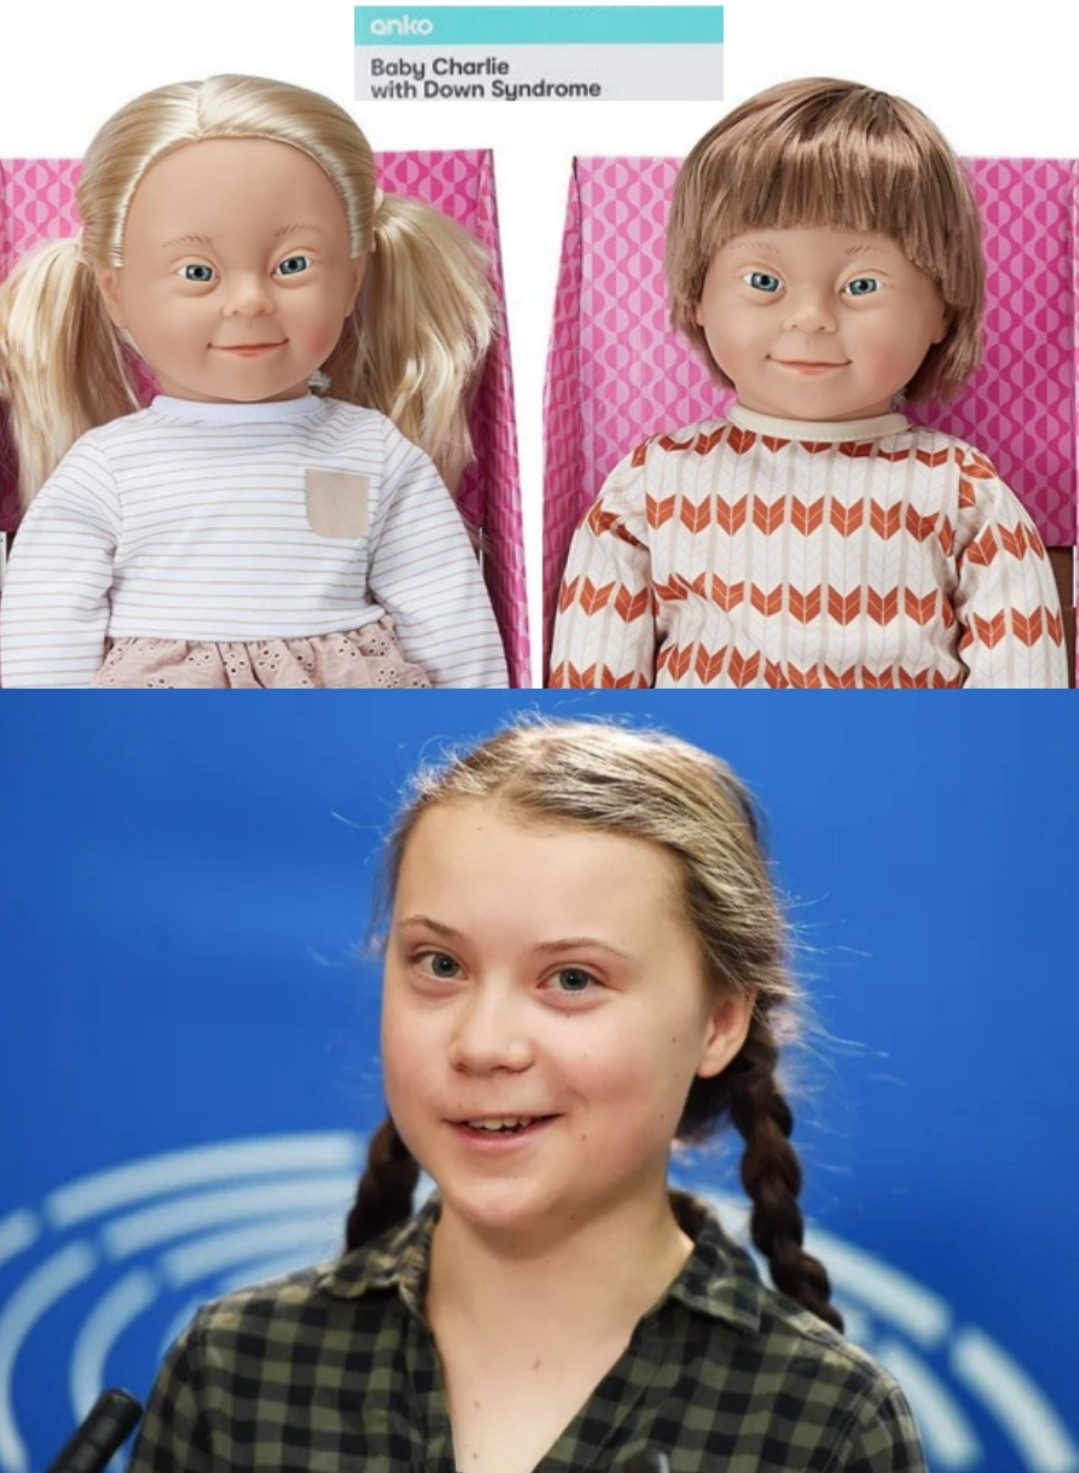 Baby dolls with Down Syndrome - meme